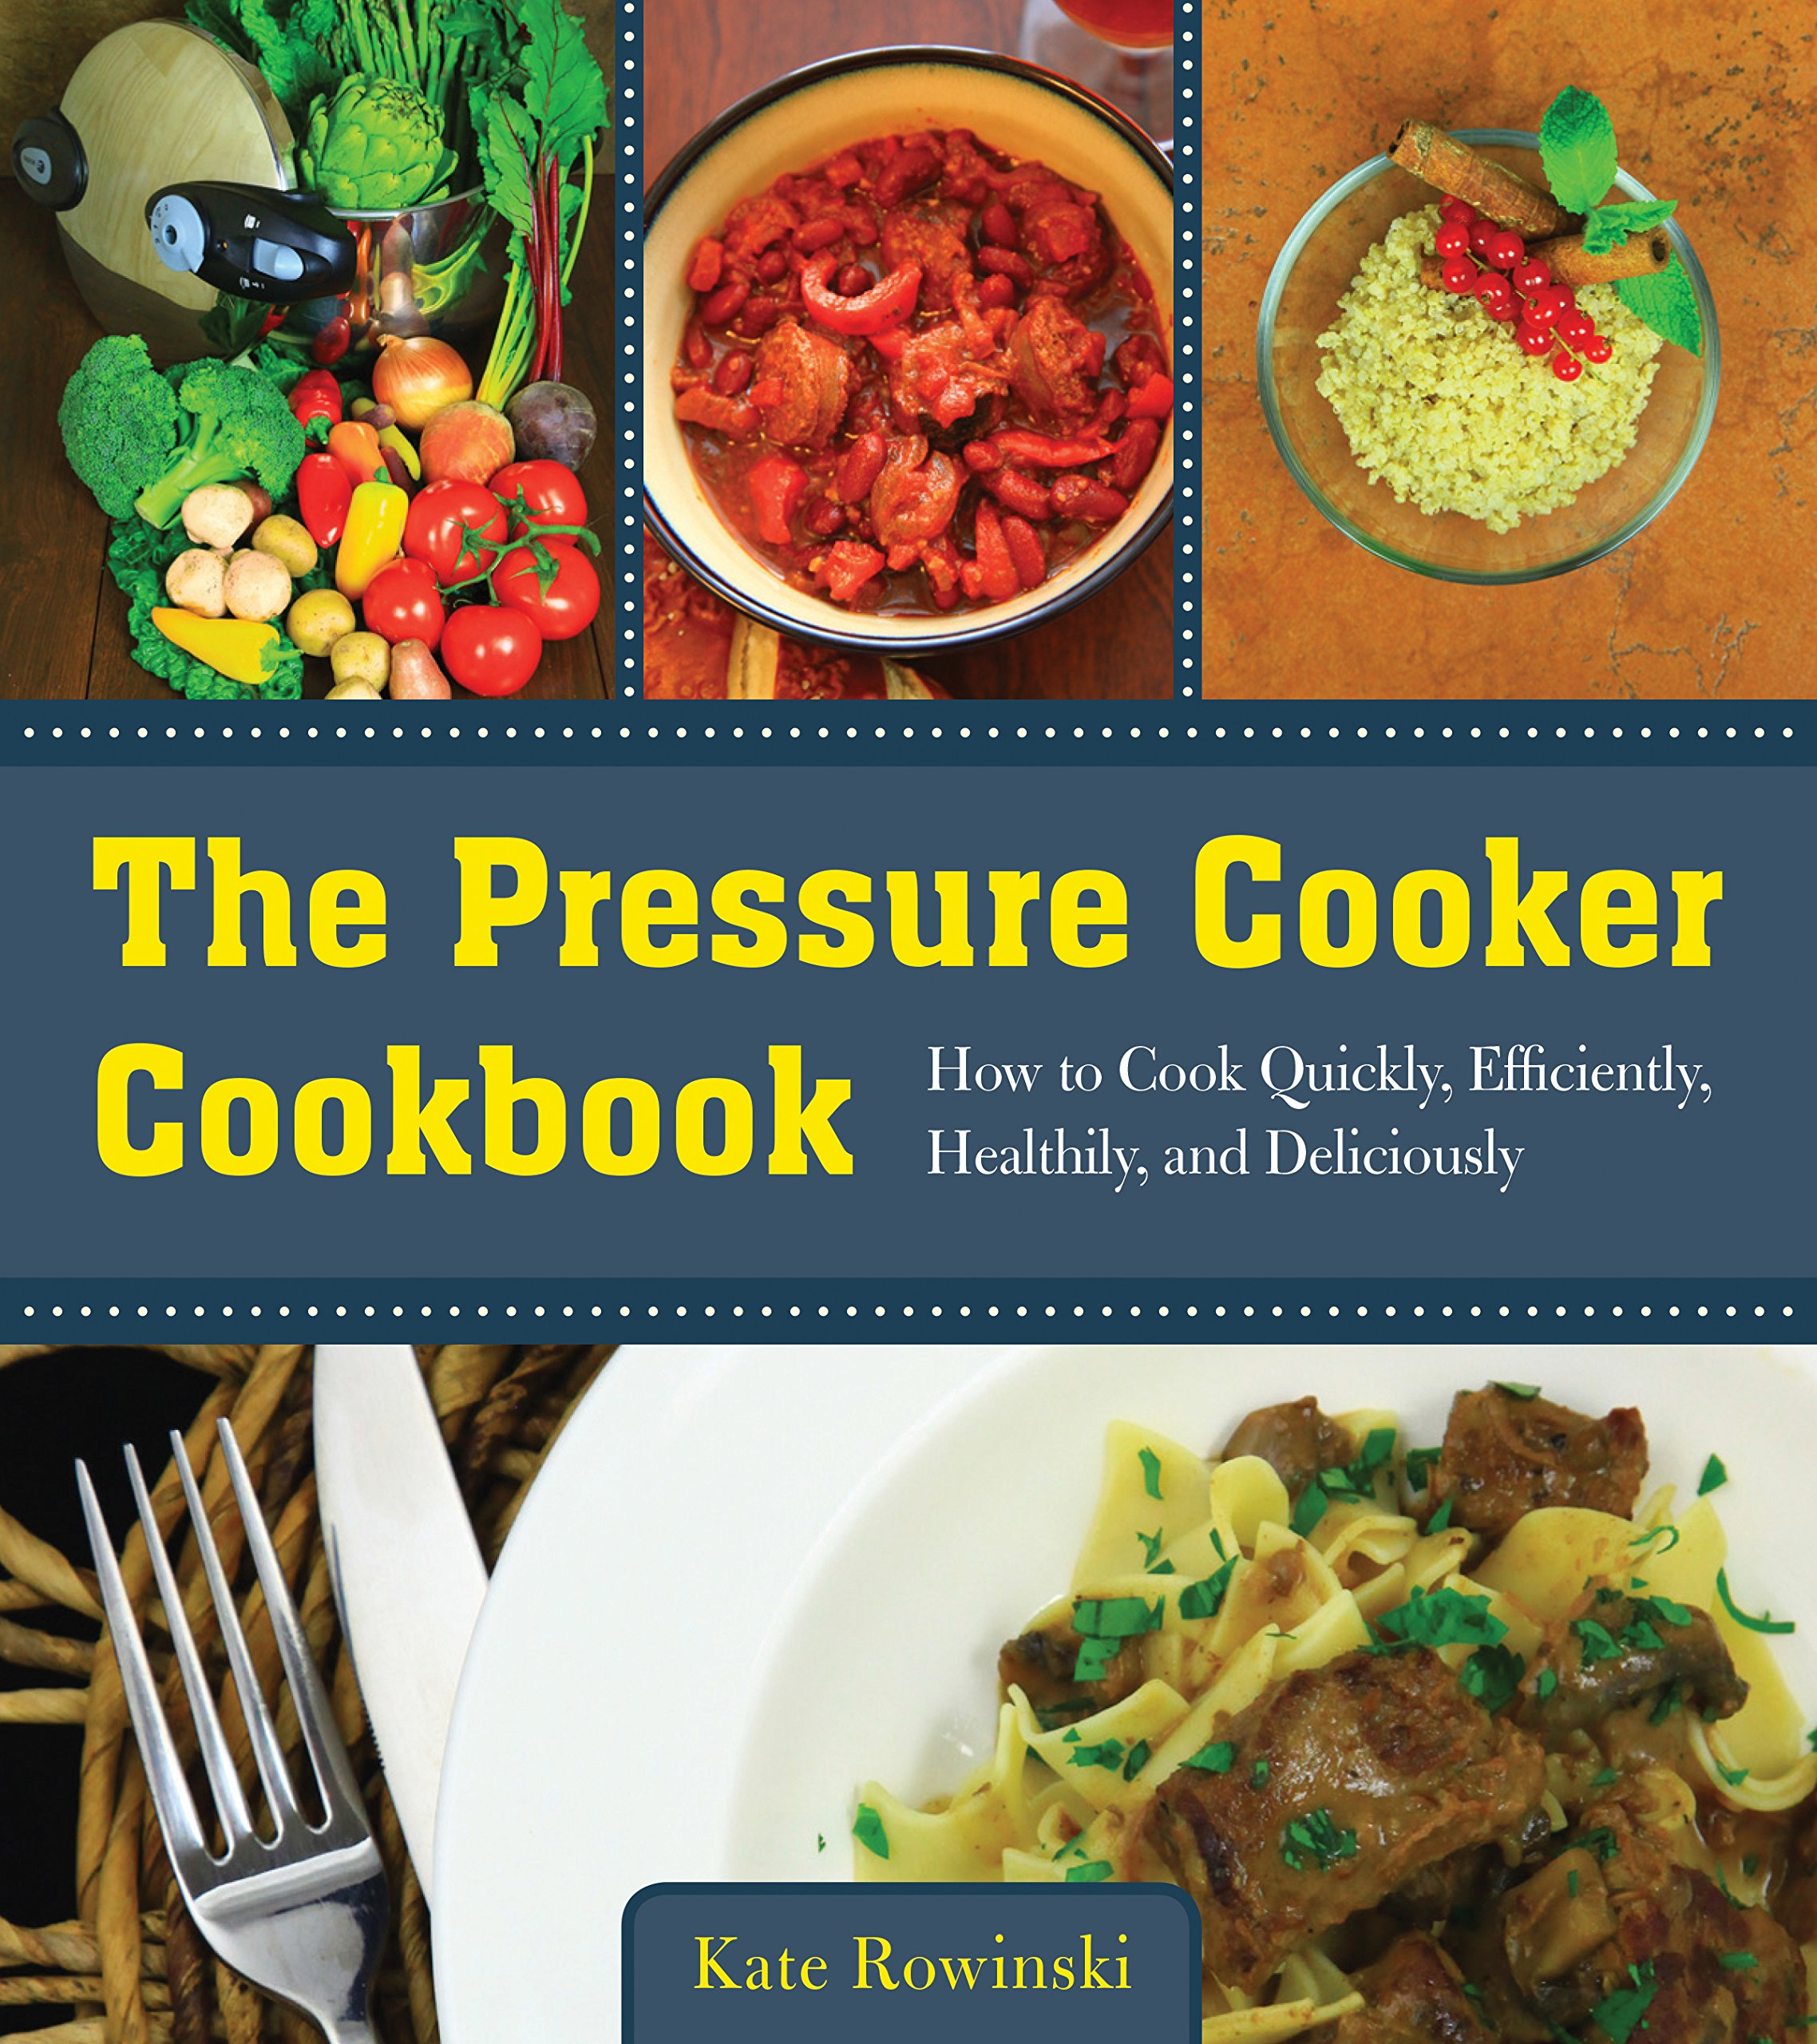 Download The Pressure Cooker Cookbook: How to Cook Quickly, Efficiently, Healthily, and Deliciously pdf epub